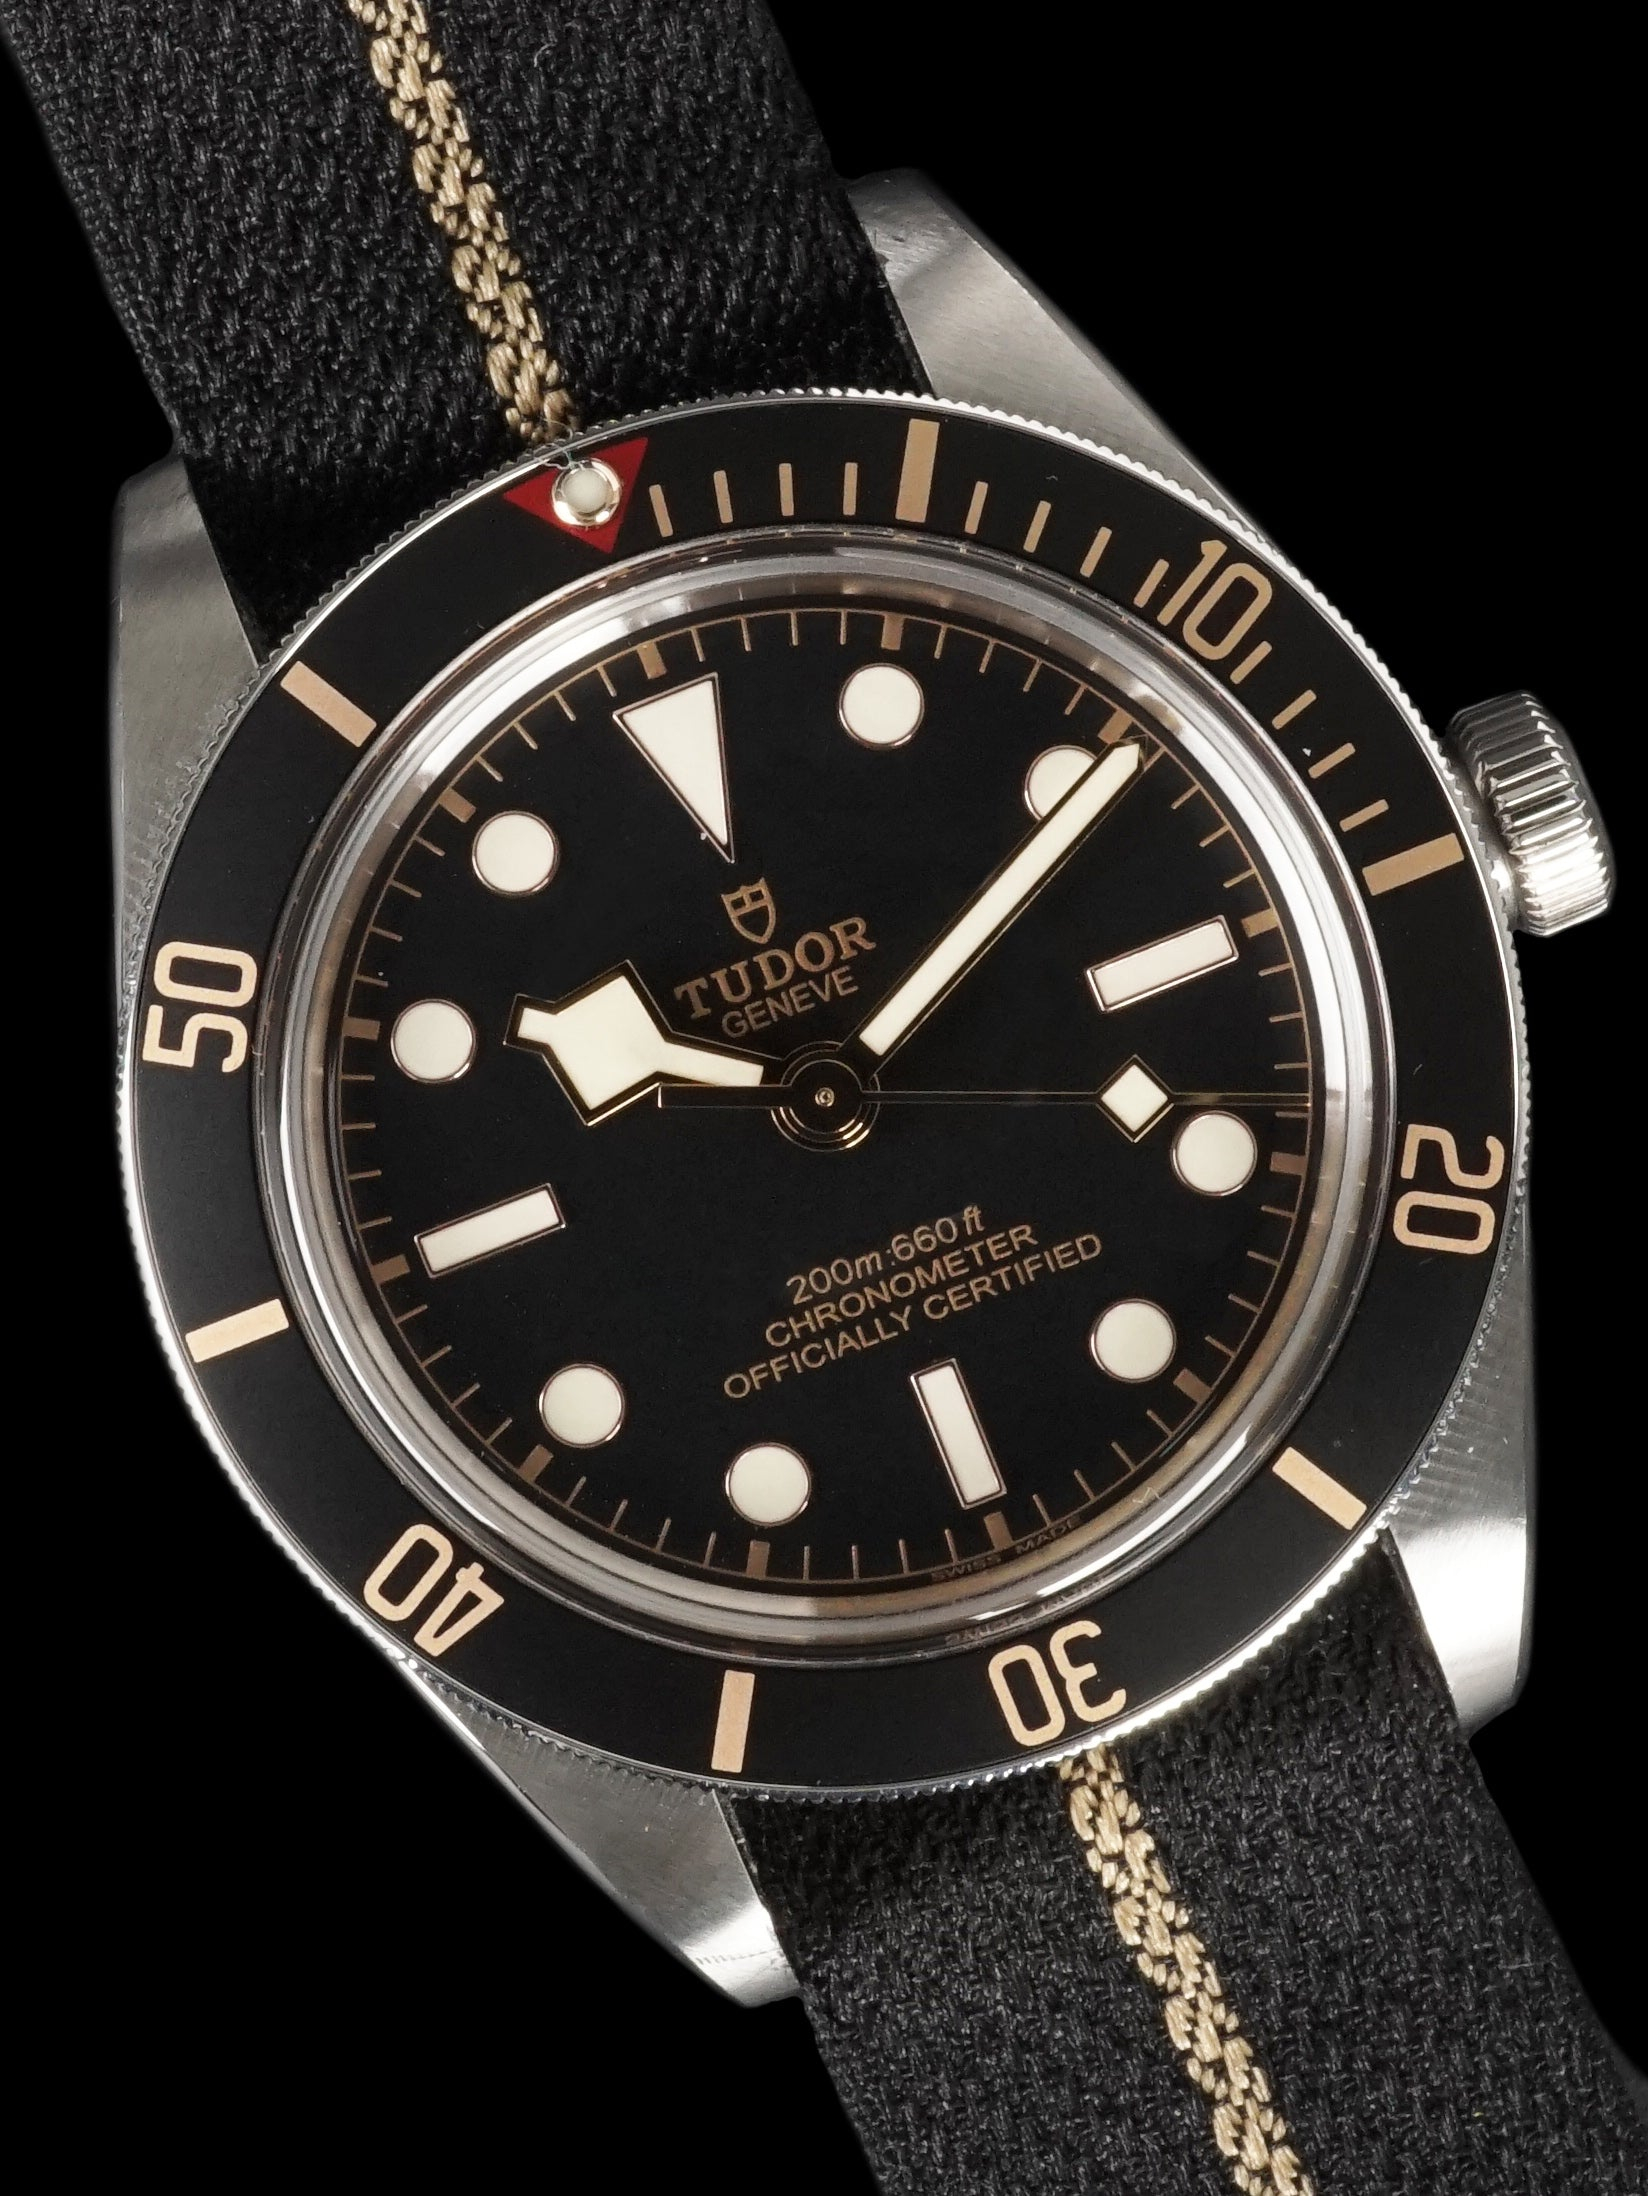 2018 Tudor Black Bay 58 (Ref. 79030) With Box and Papers